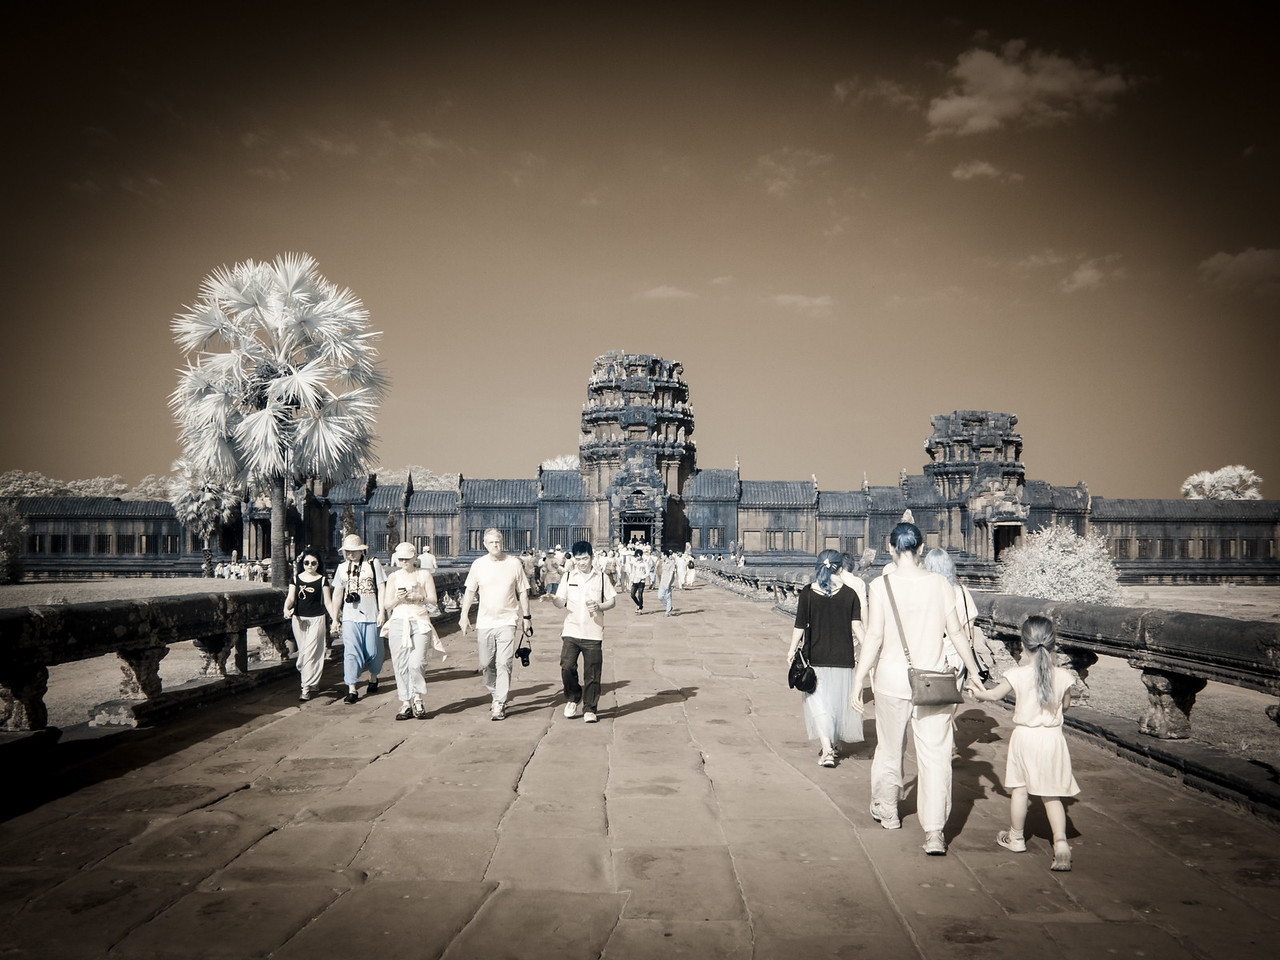 The causeway at Angkor Wat. Infrared photo.